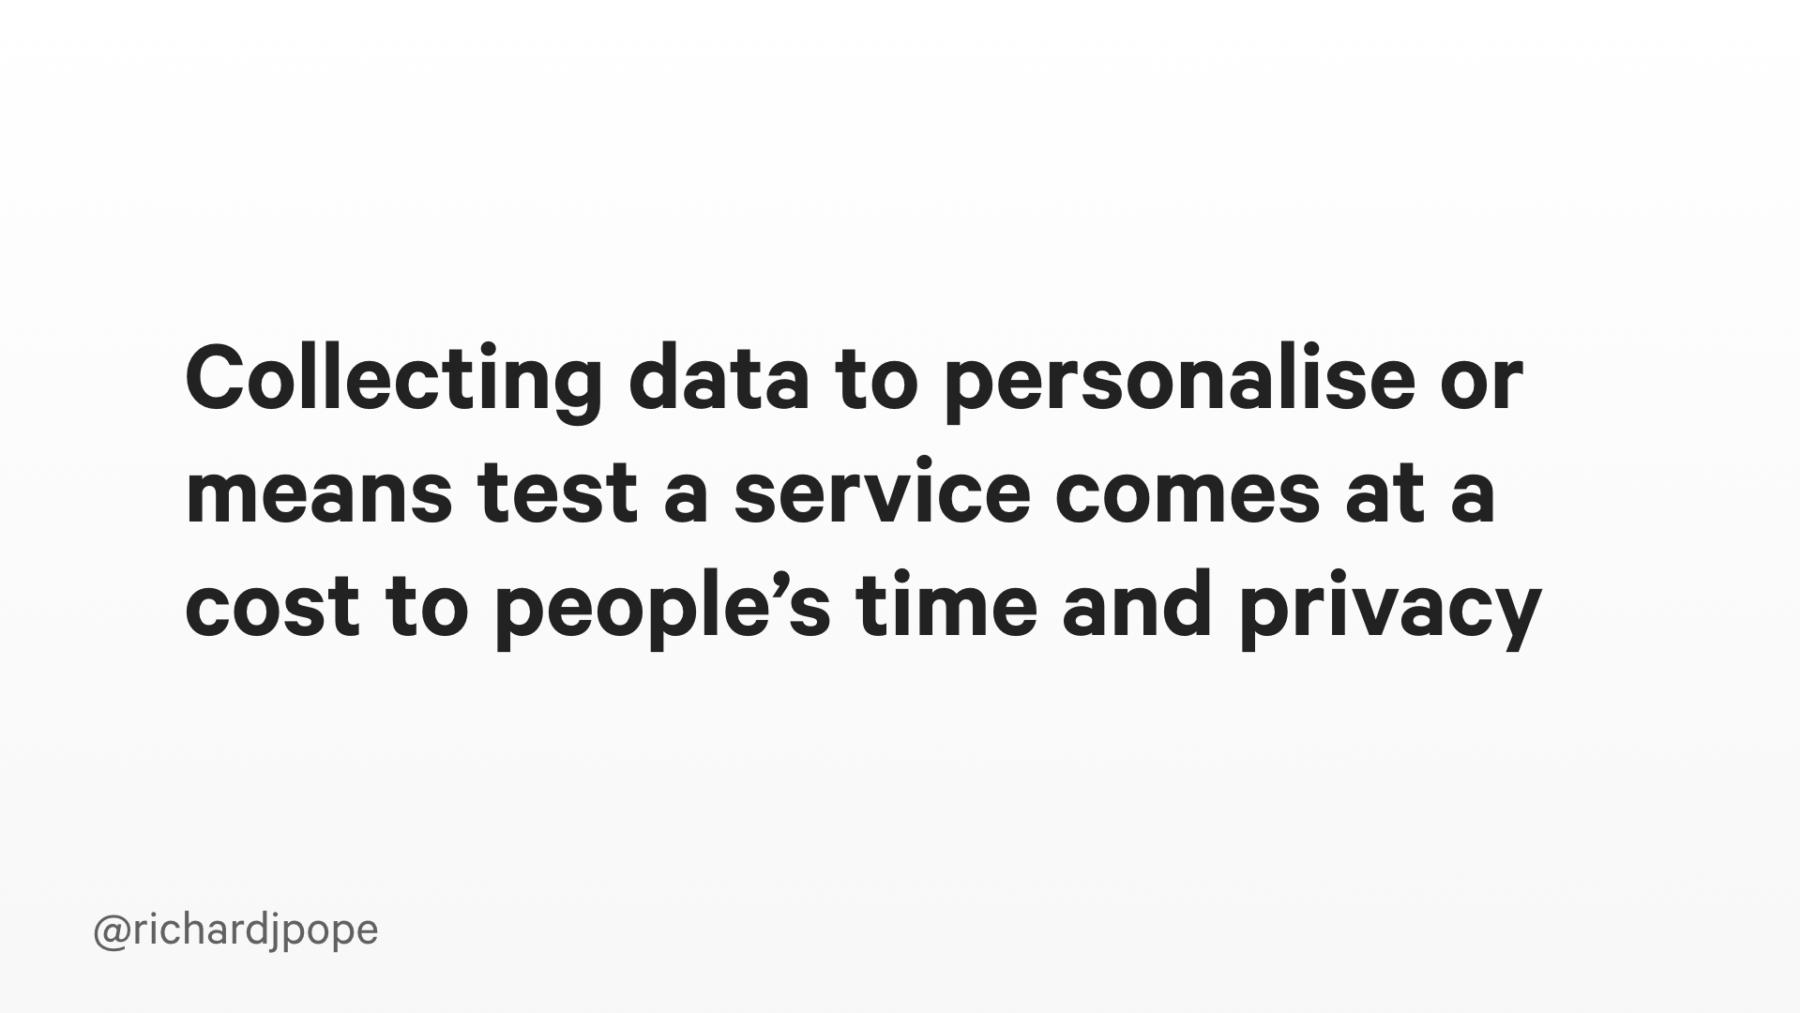 Slide copy: Collecting data to personalise or means test a service comes at a cost to people's time and privacy.